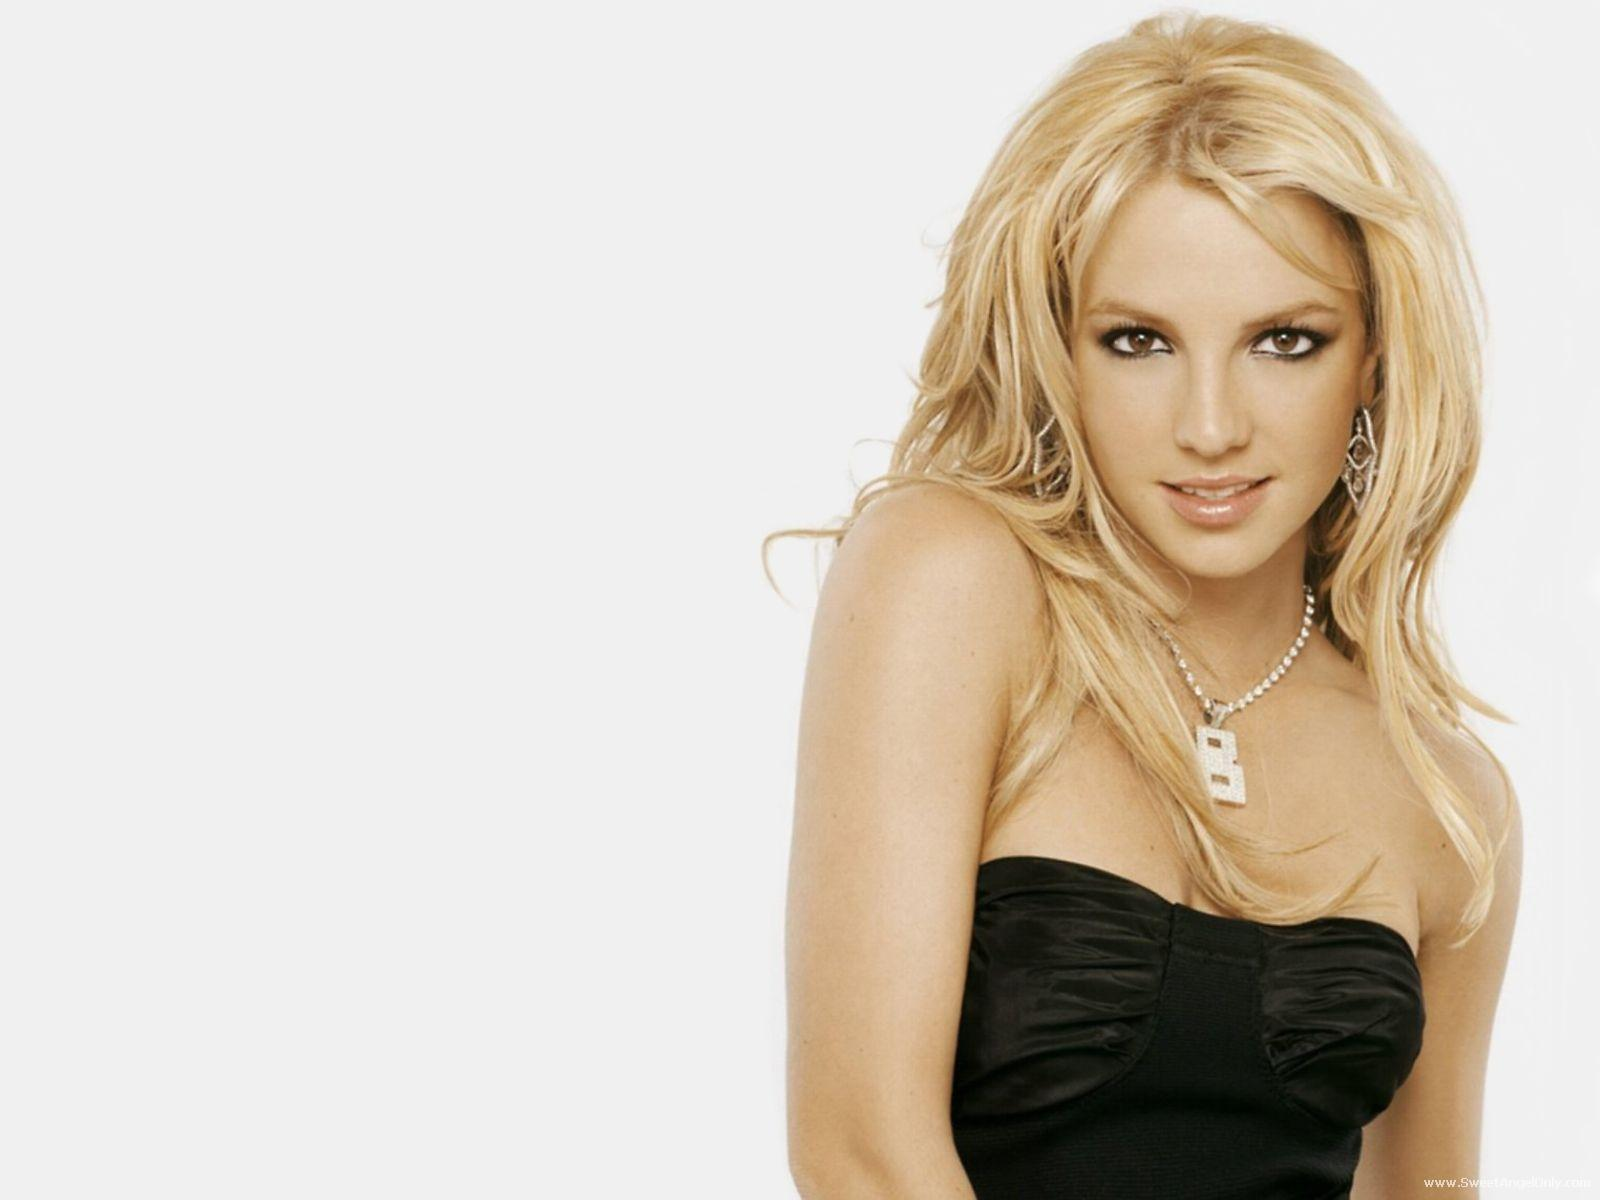 Booty Me Now Britney Spears Full Hd Wallpapers